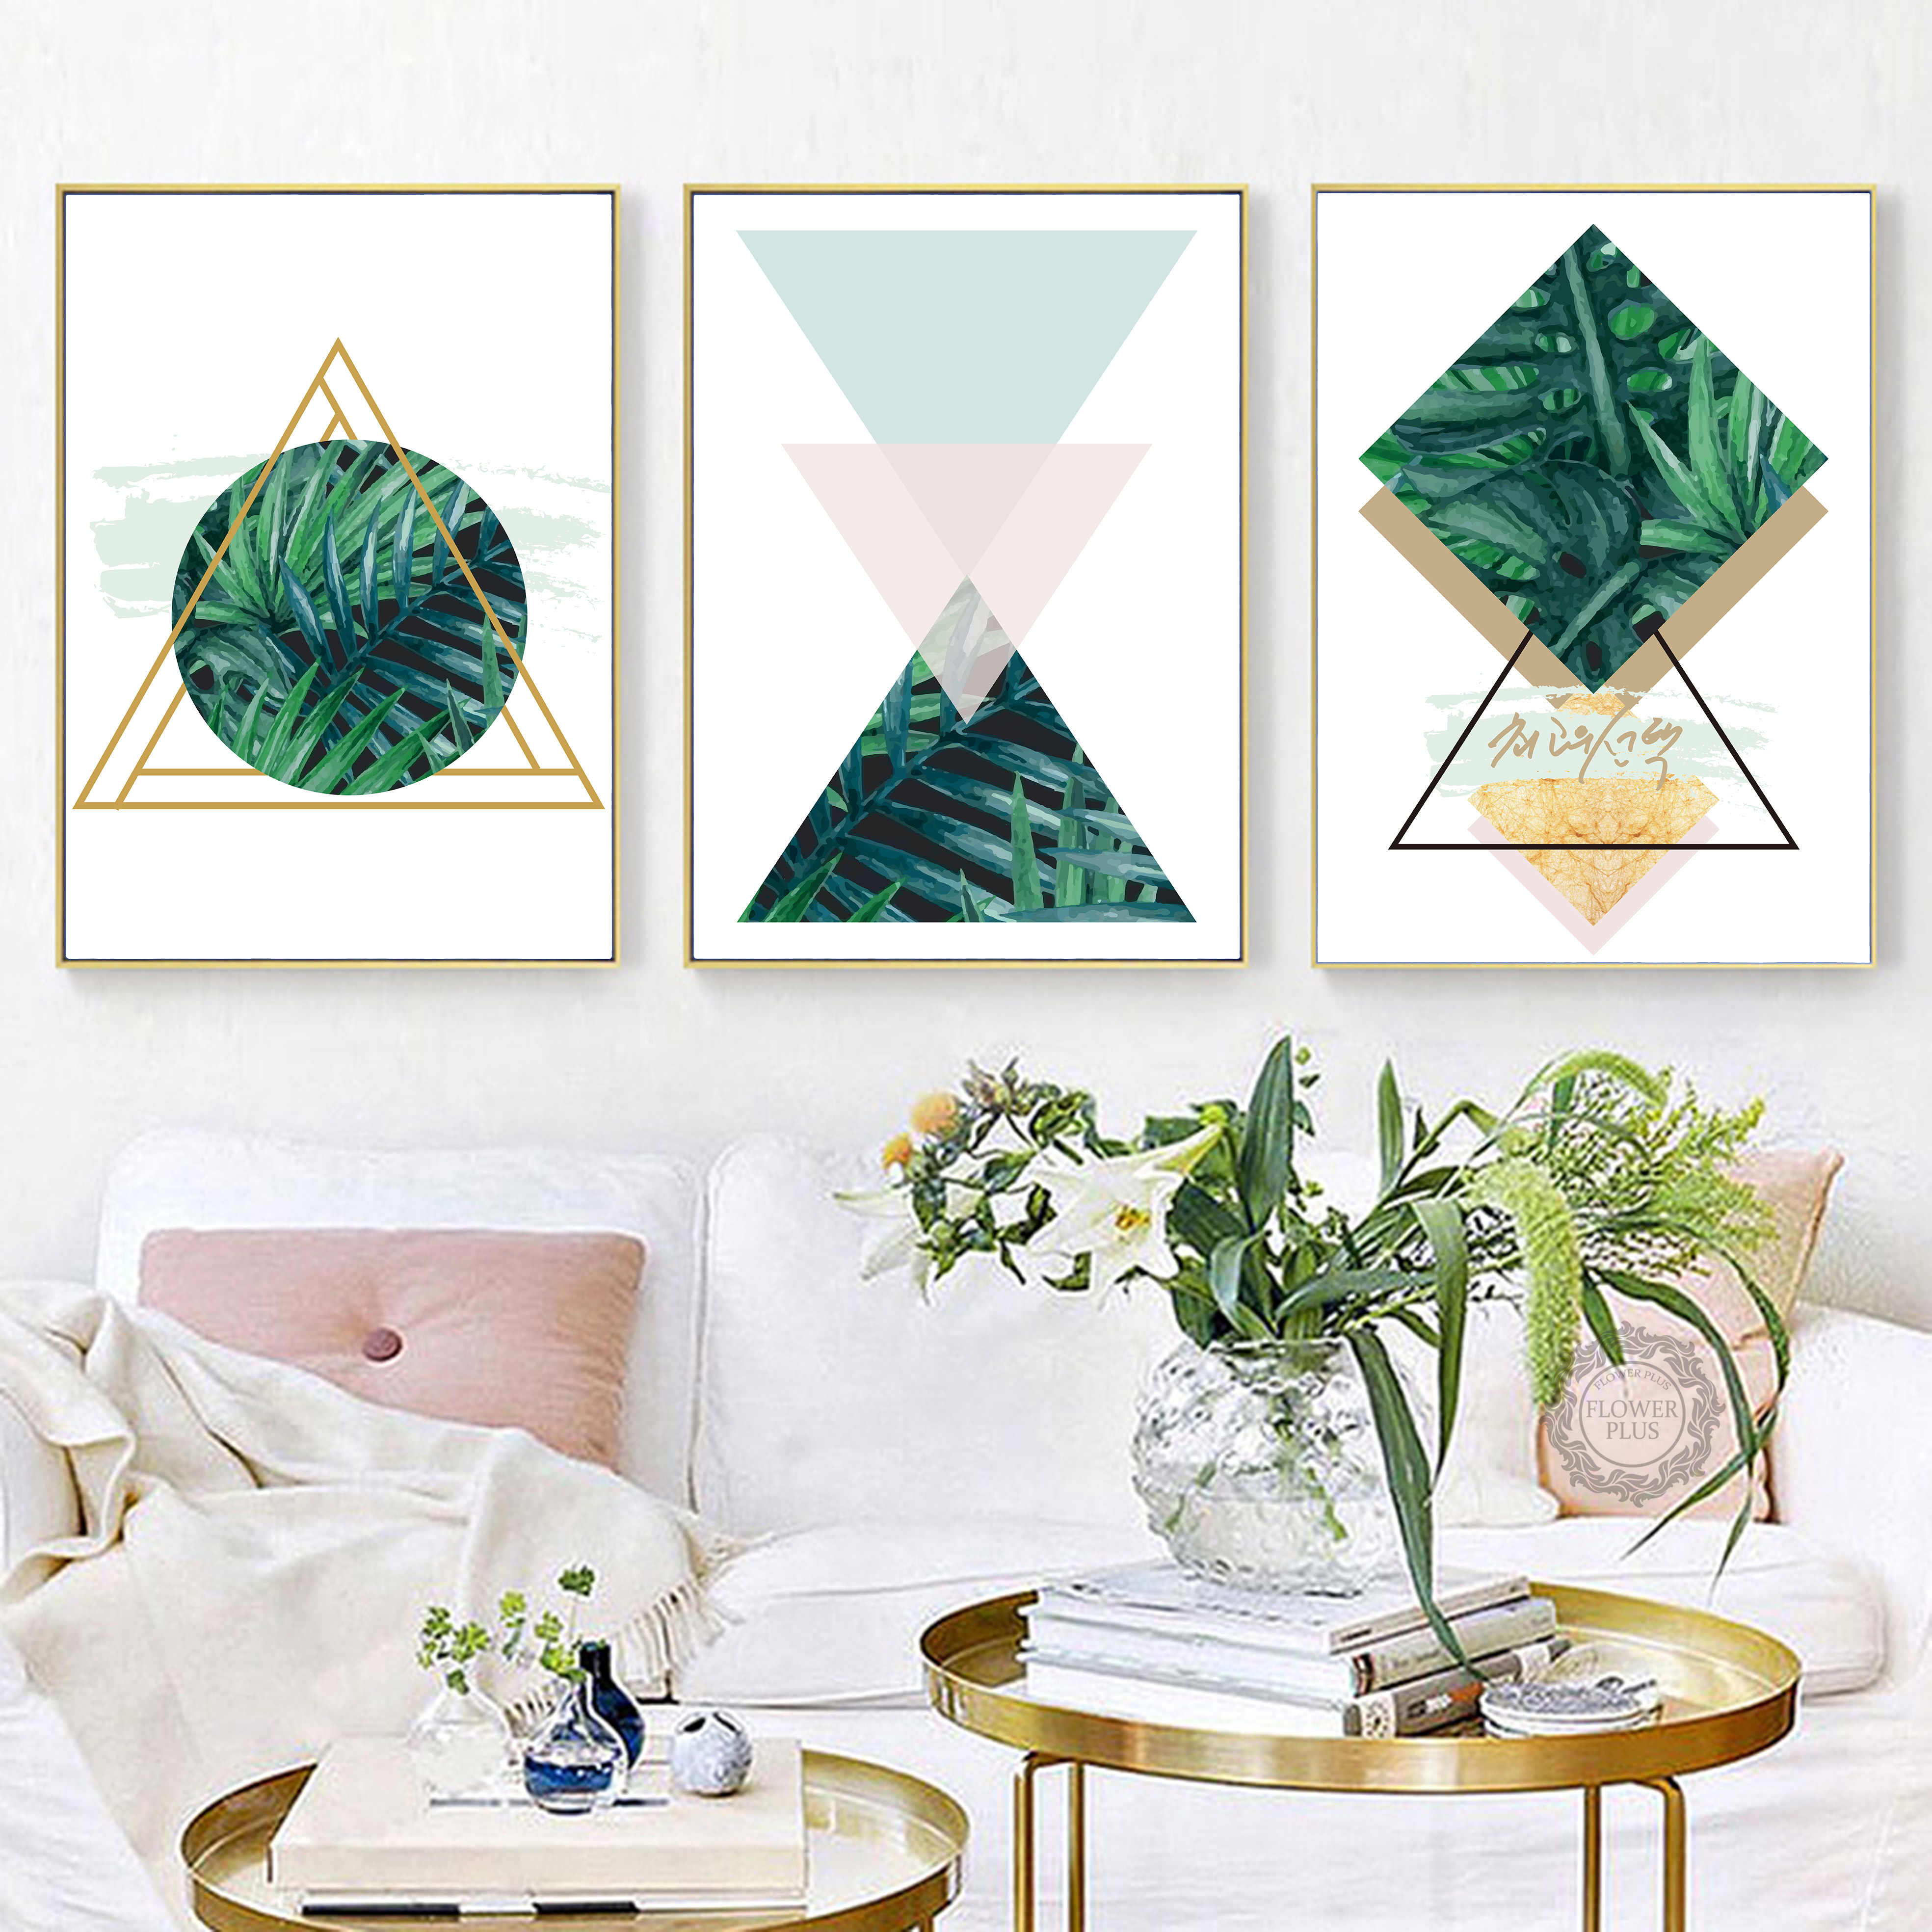 Poster Nordic Style Home Decor Picture Geometric Pink Green Marble Gray Rose Gold Printable Wall Art Digital Quadro Cuadros Painting Calligraphy Aliexpress